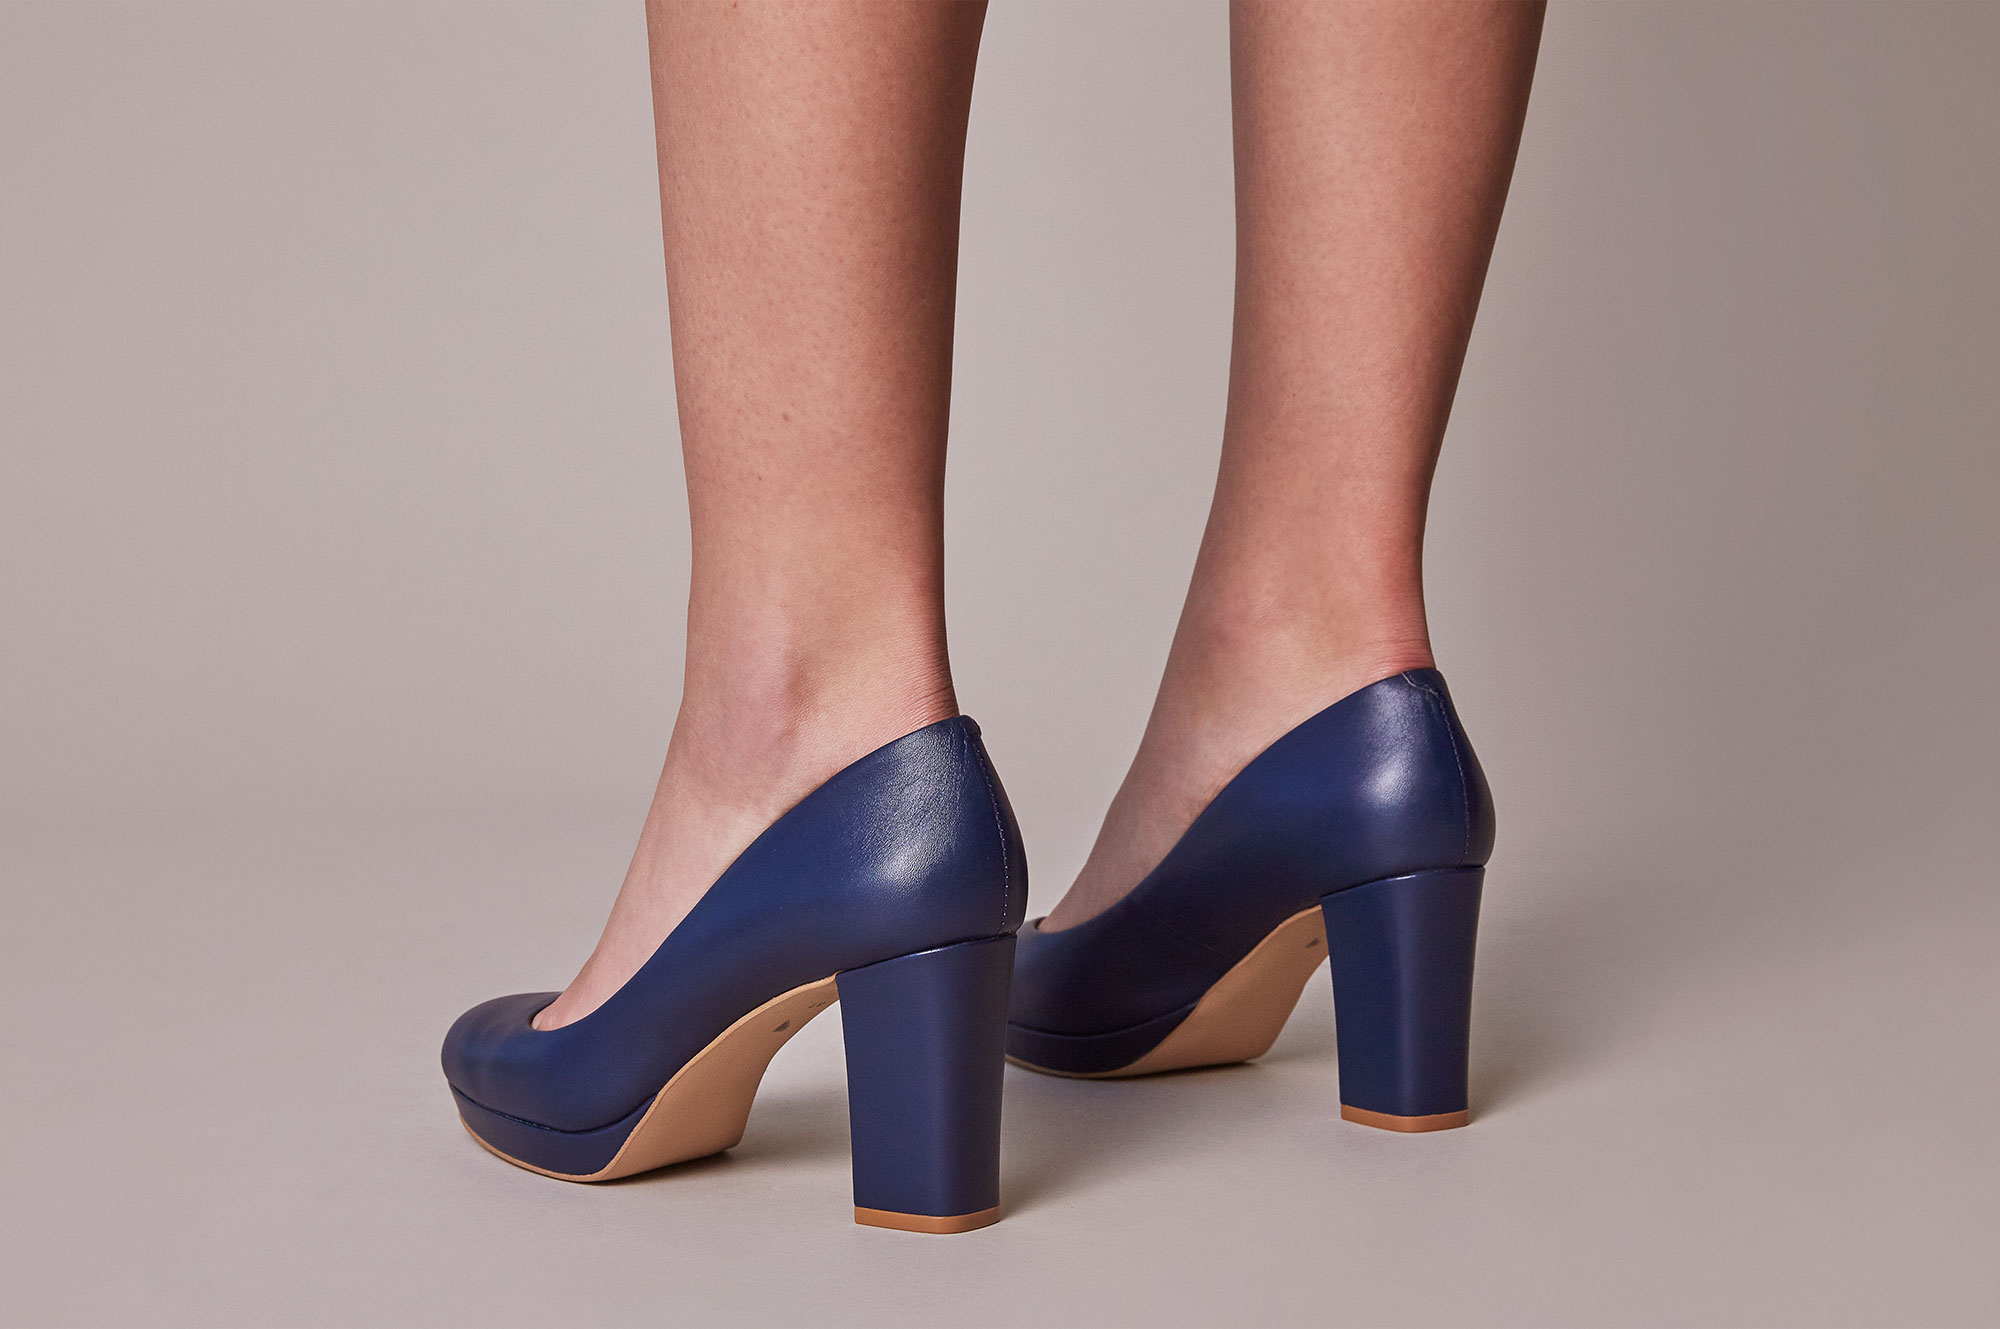 Design your own shoes. 3.5 inch navy leather heels